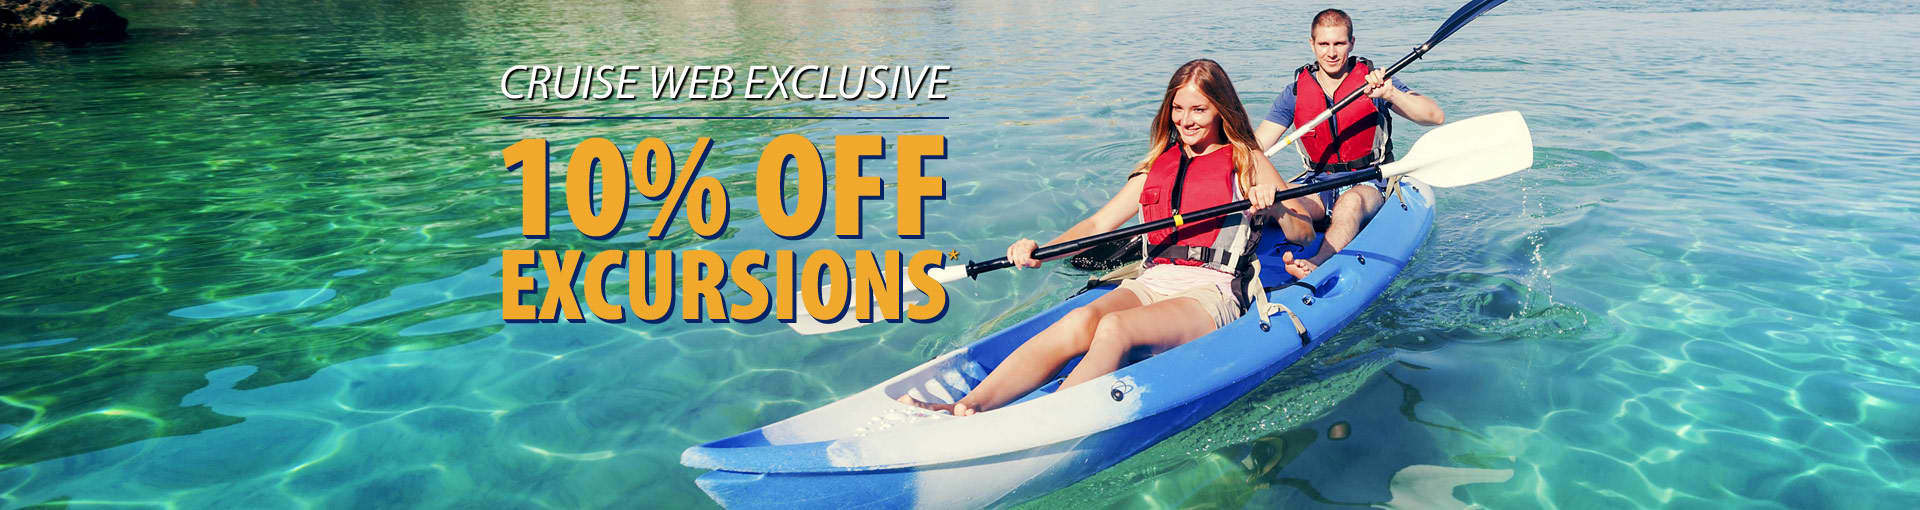 10% Off Excursions with The Cruise Web